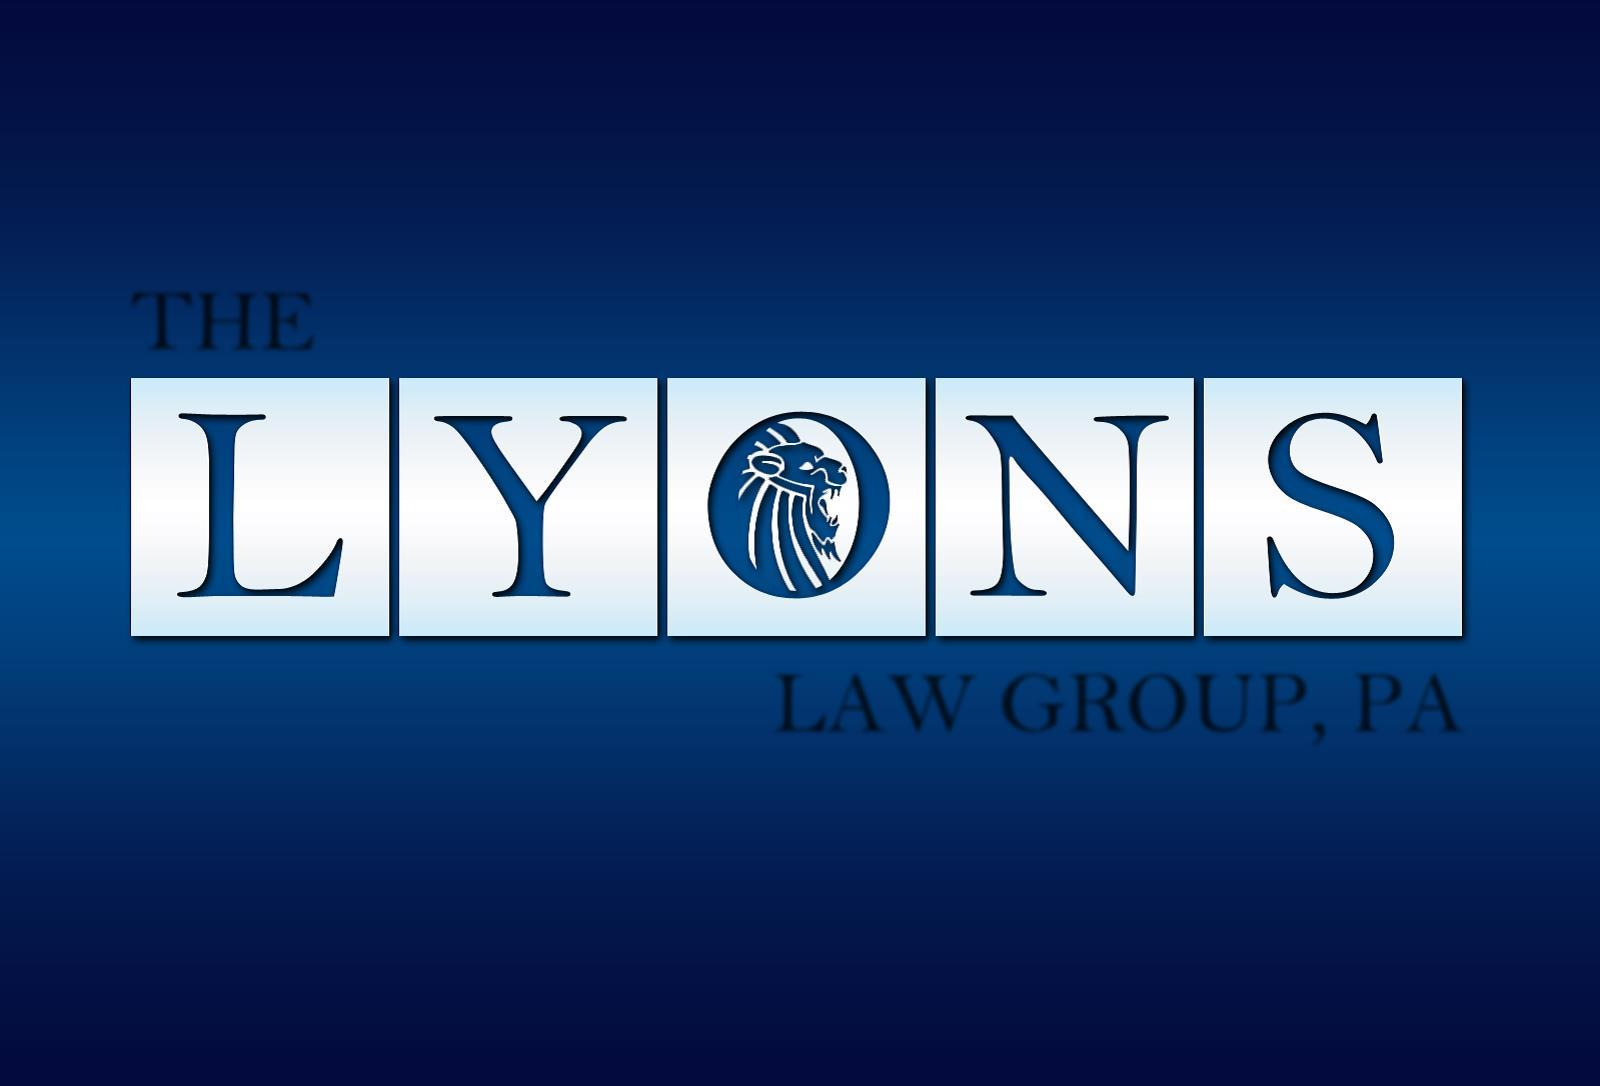 Lyons Law Group, PA